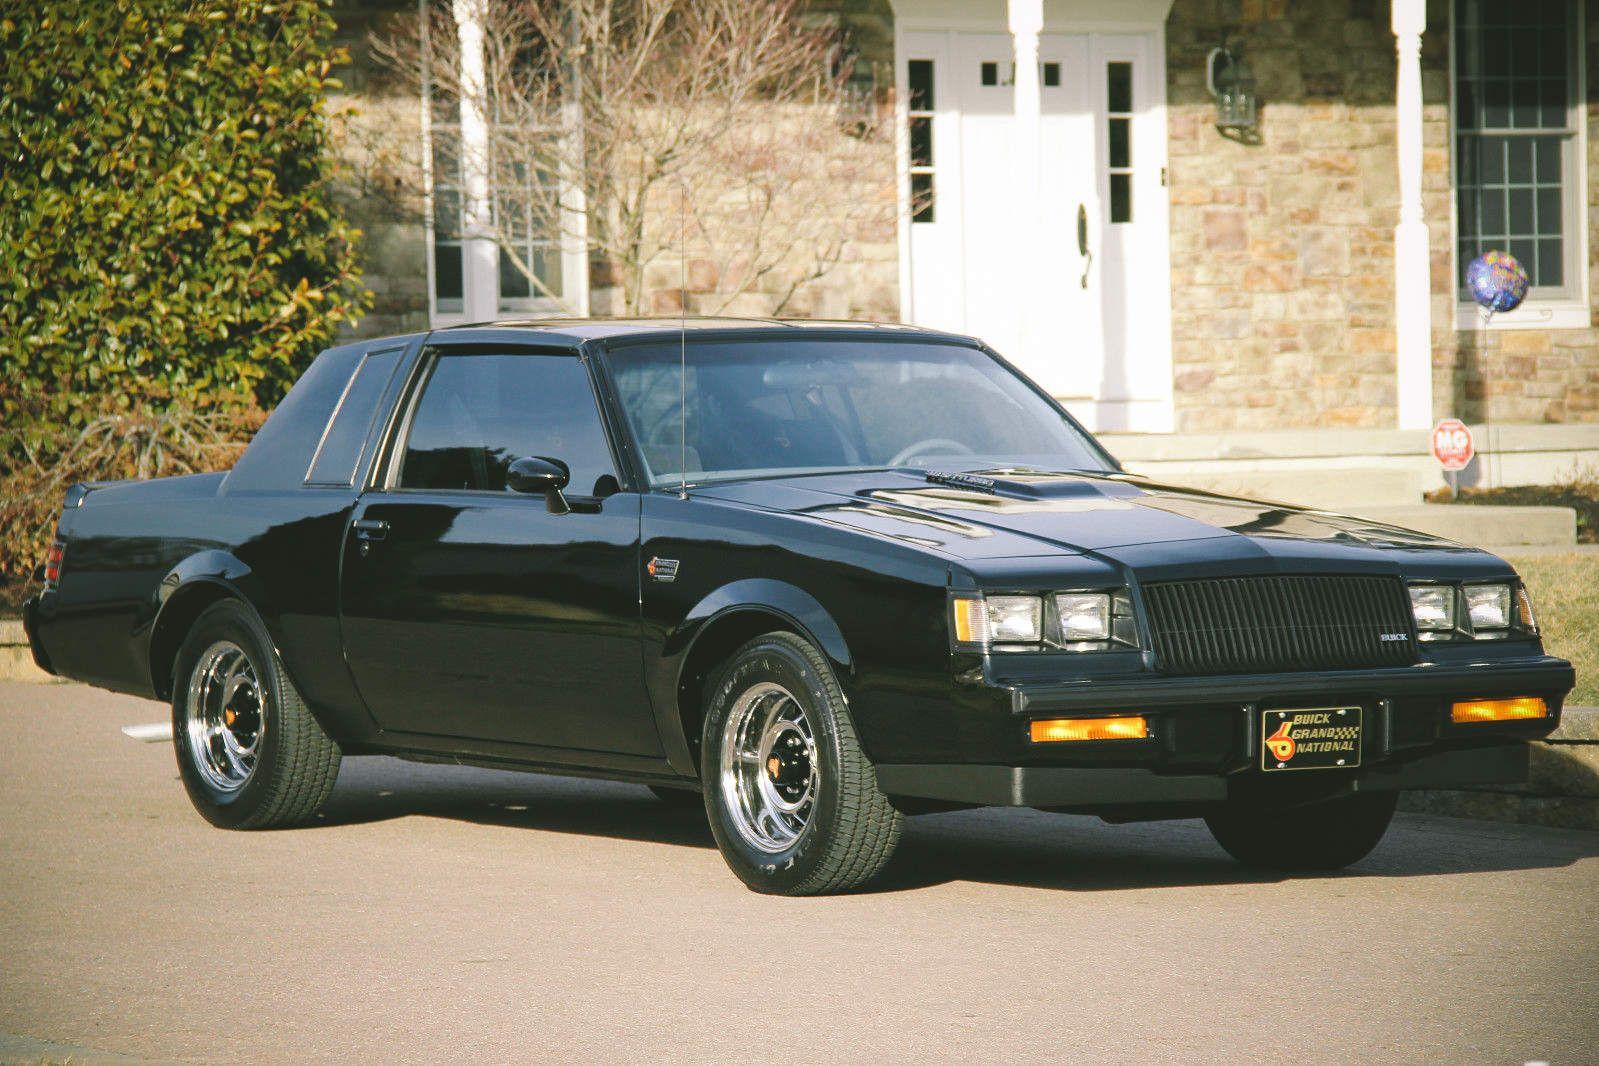 The buick grand national and the gnx are basically the last of the old school american